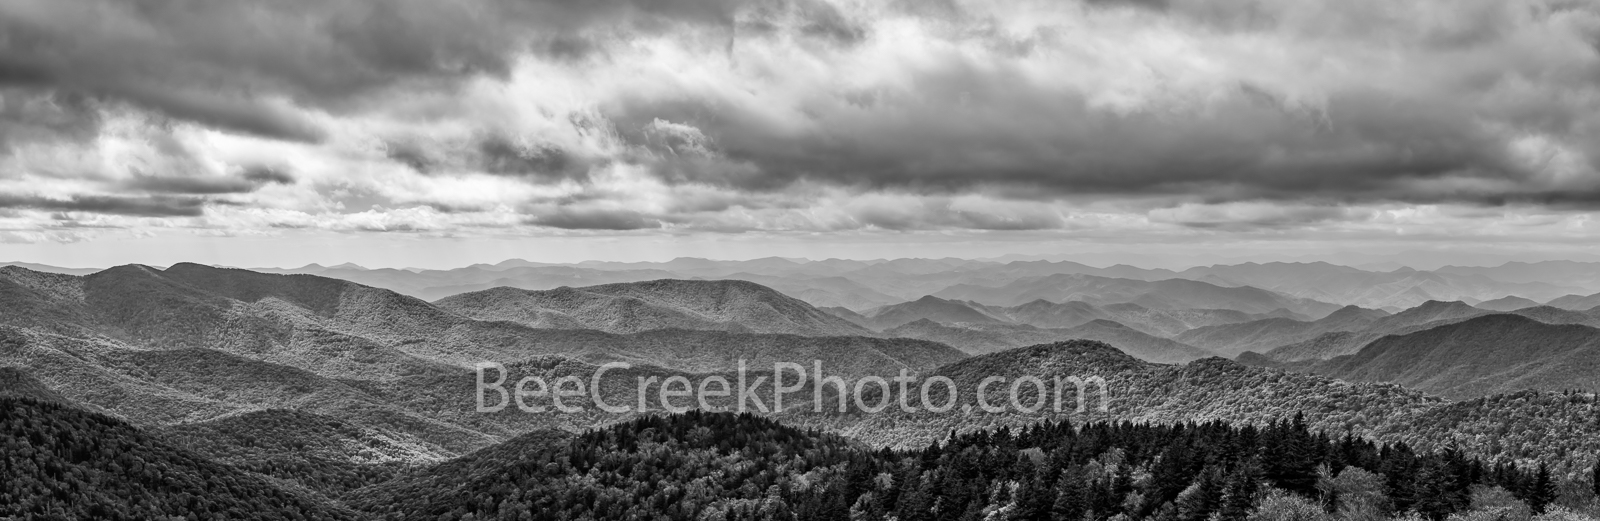 smokies, smoky mountains, north caroline, cloudy, skies, blue ridge mountain, great smoky mountains national park, bw, black and white, national park, landscape, scenic, nc, tn, ridges, outdoors, fall, photo